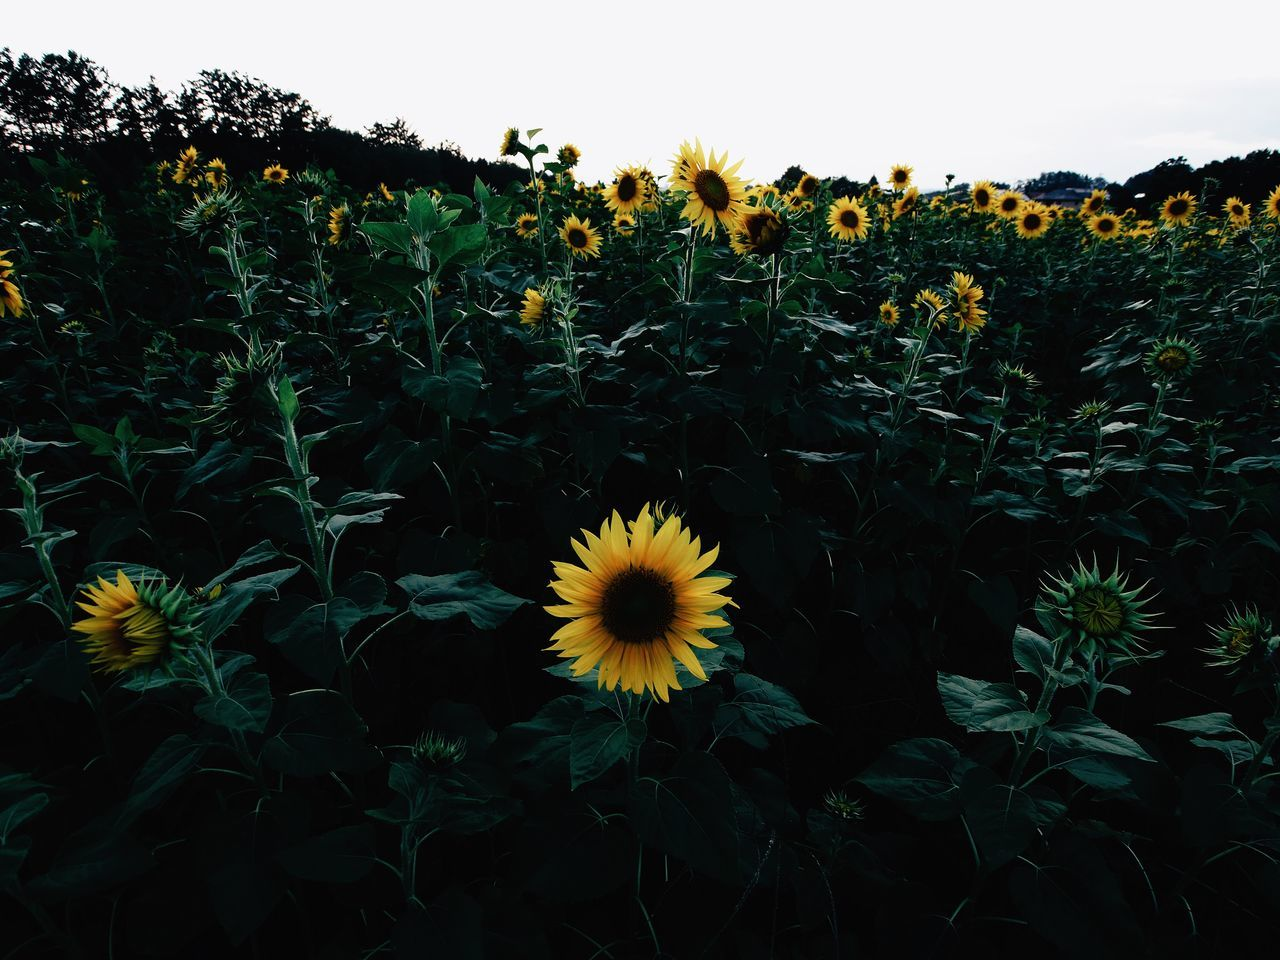 Protectionsunflowers field] Flower Collection EyeEm Flower Flowers_collection Nature_collection EyeEm Nature Lover